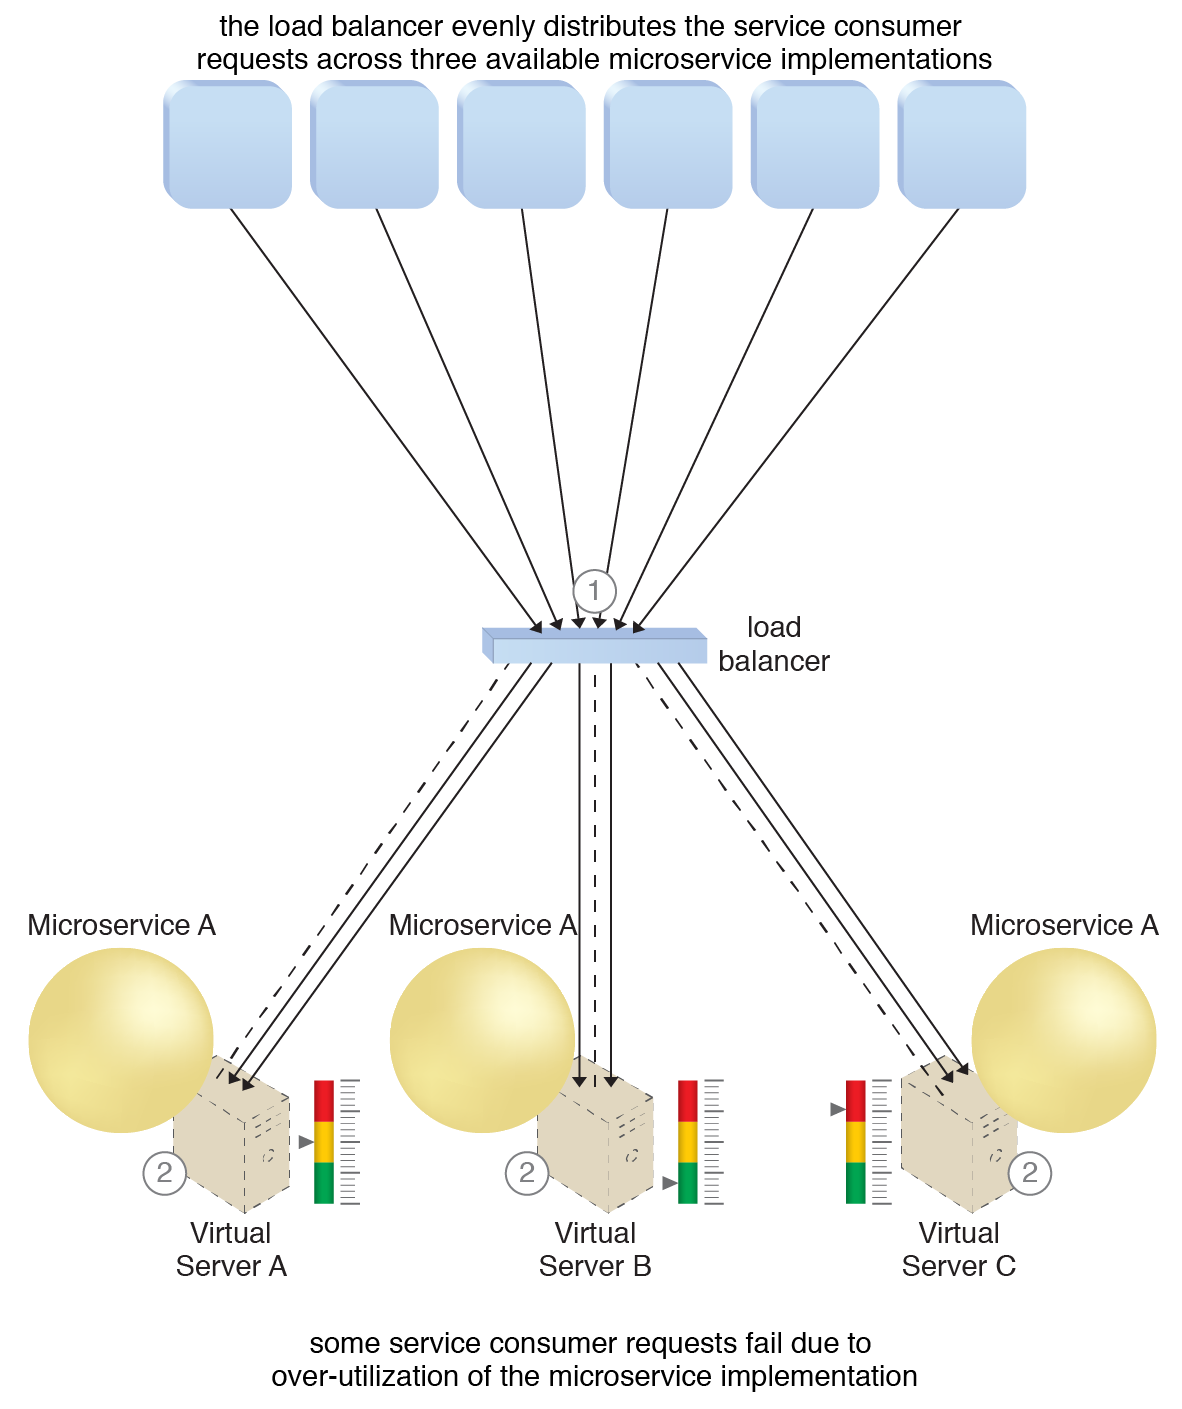 Service Load Balancing: The load balancing agent intercepts messages sent by service consumers (1) and forwards the messages at runtime to the virtual servers so that the workload processing is horizontally scaled (2). Each virtual server receives requests based on its capacity, meaning none will be over-utilized.